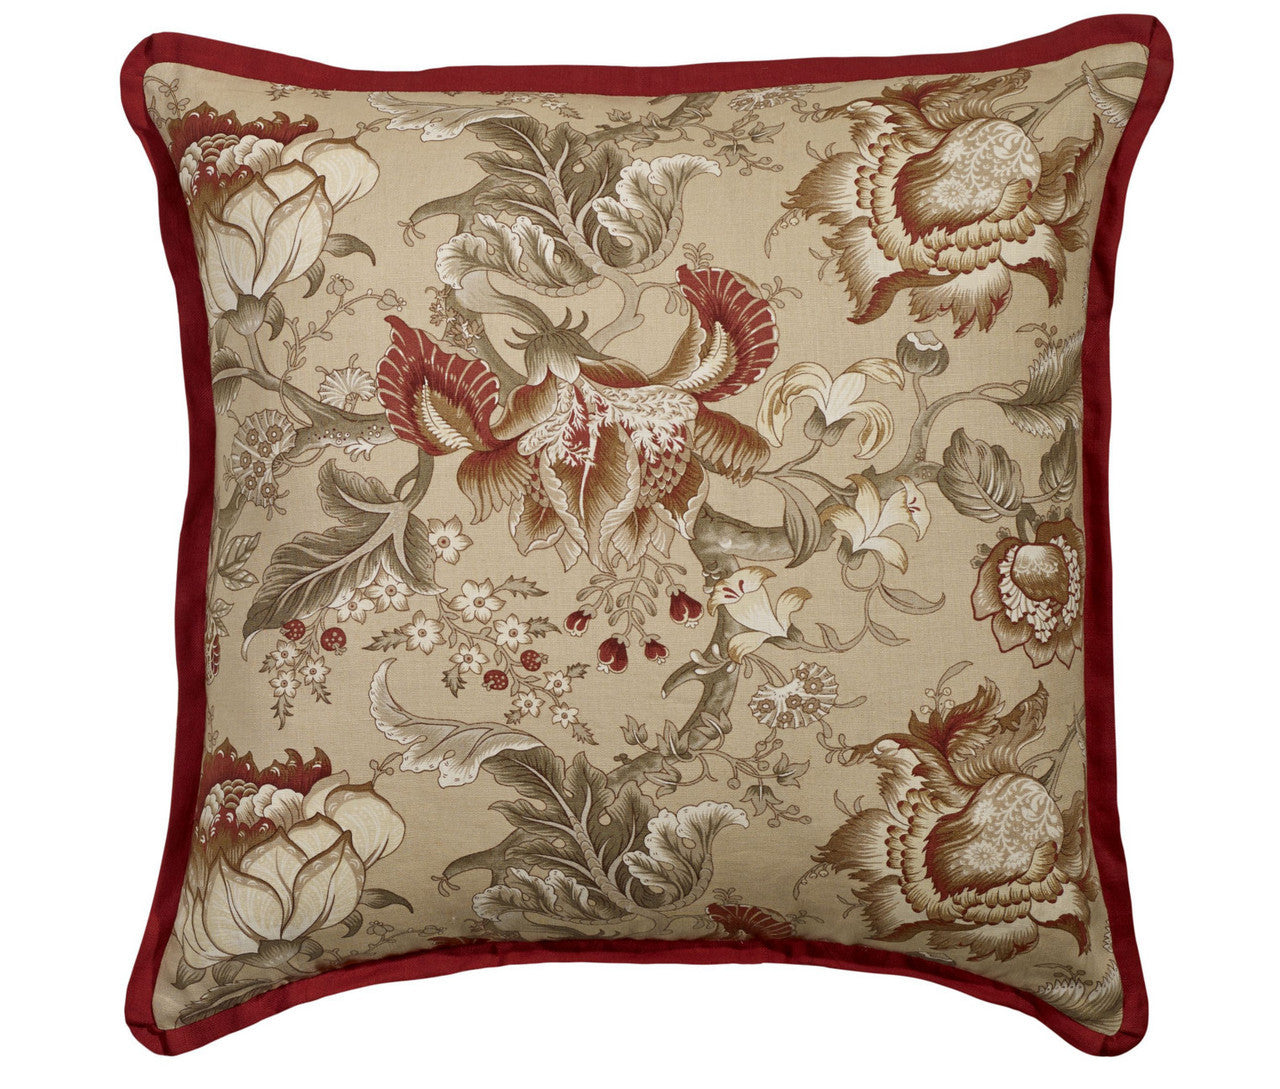 Montana Euro Sham B Mystic Valley Traders - unique linens online